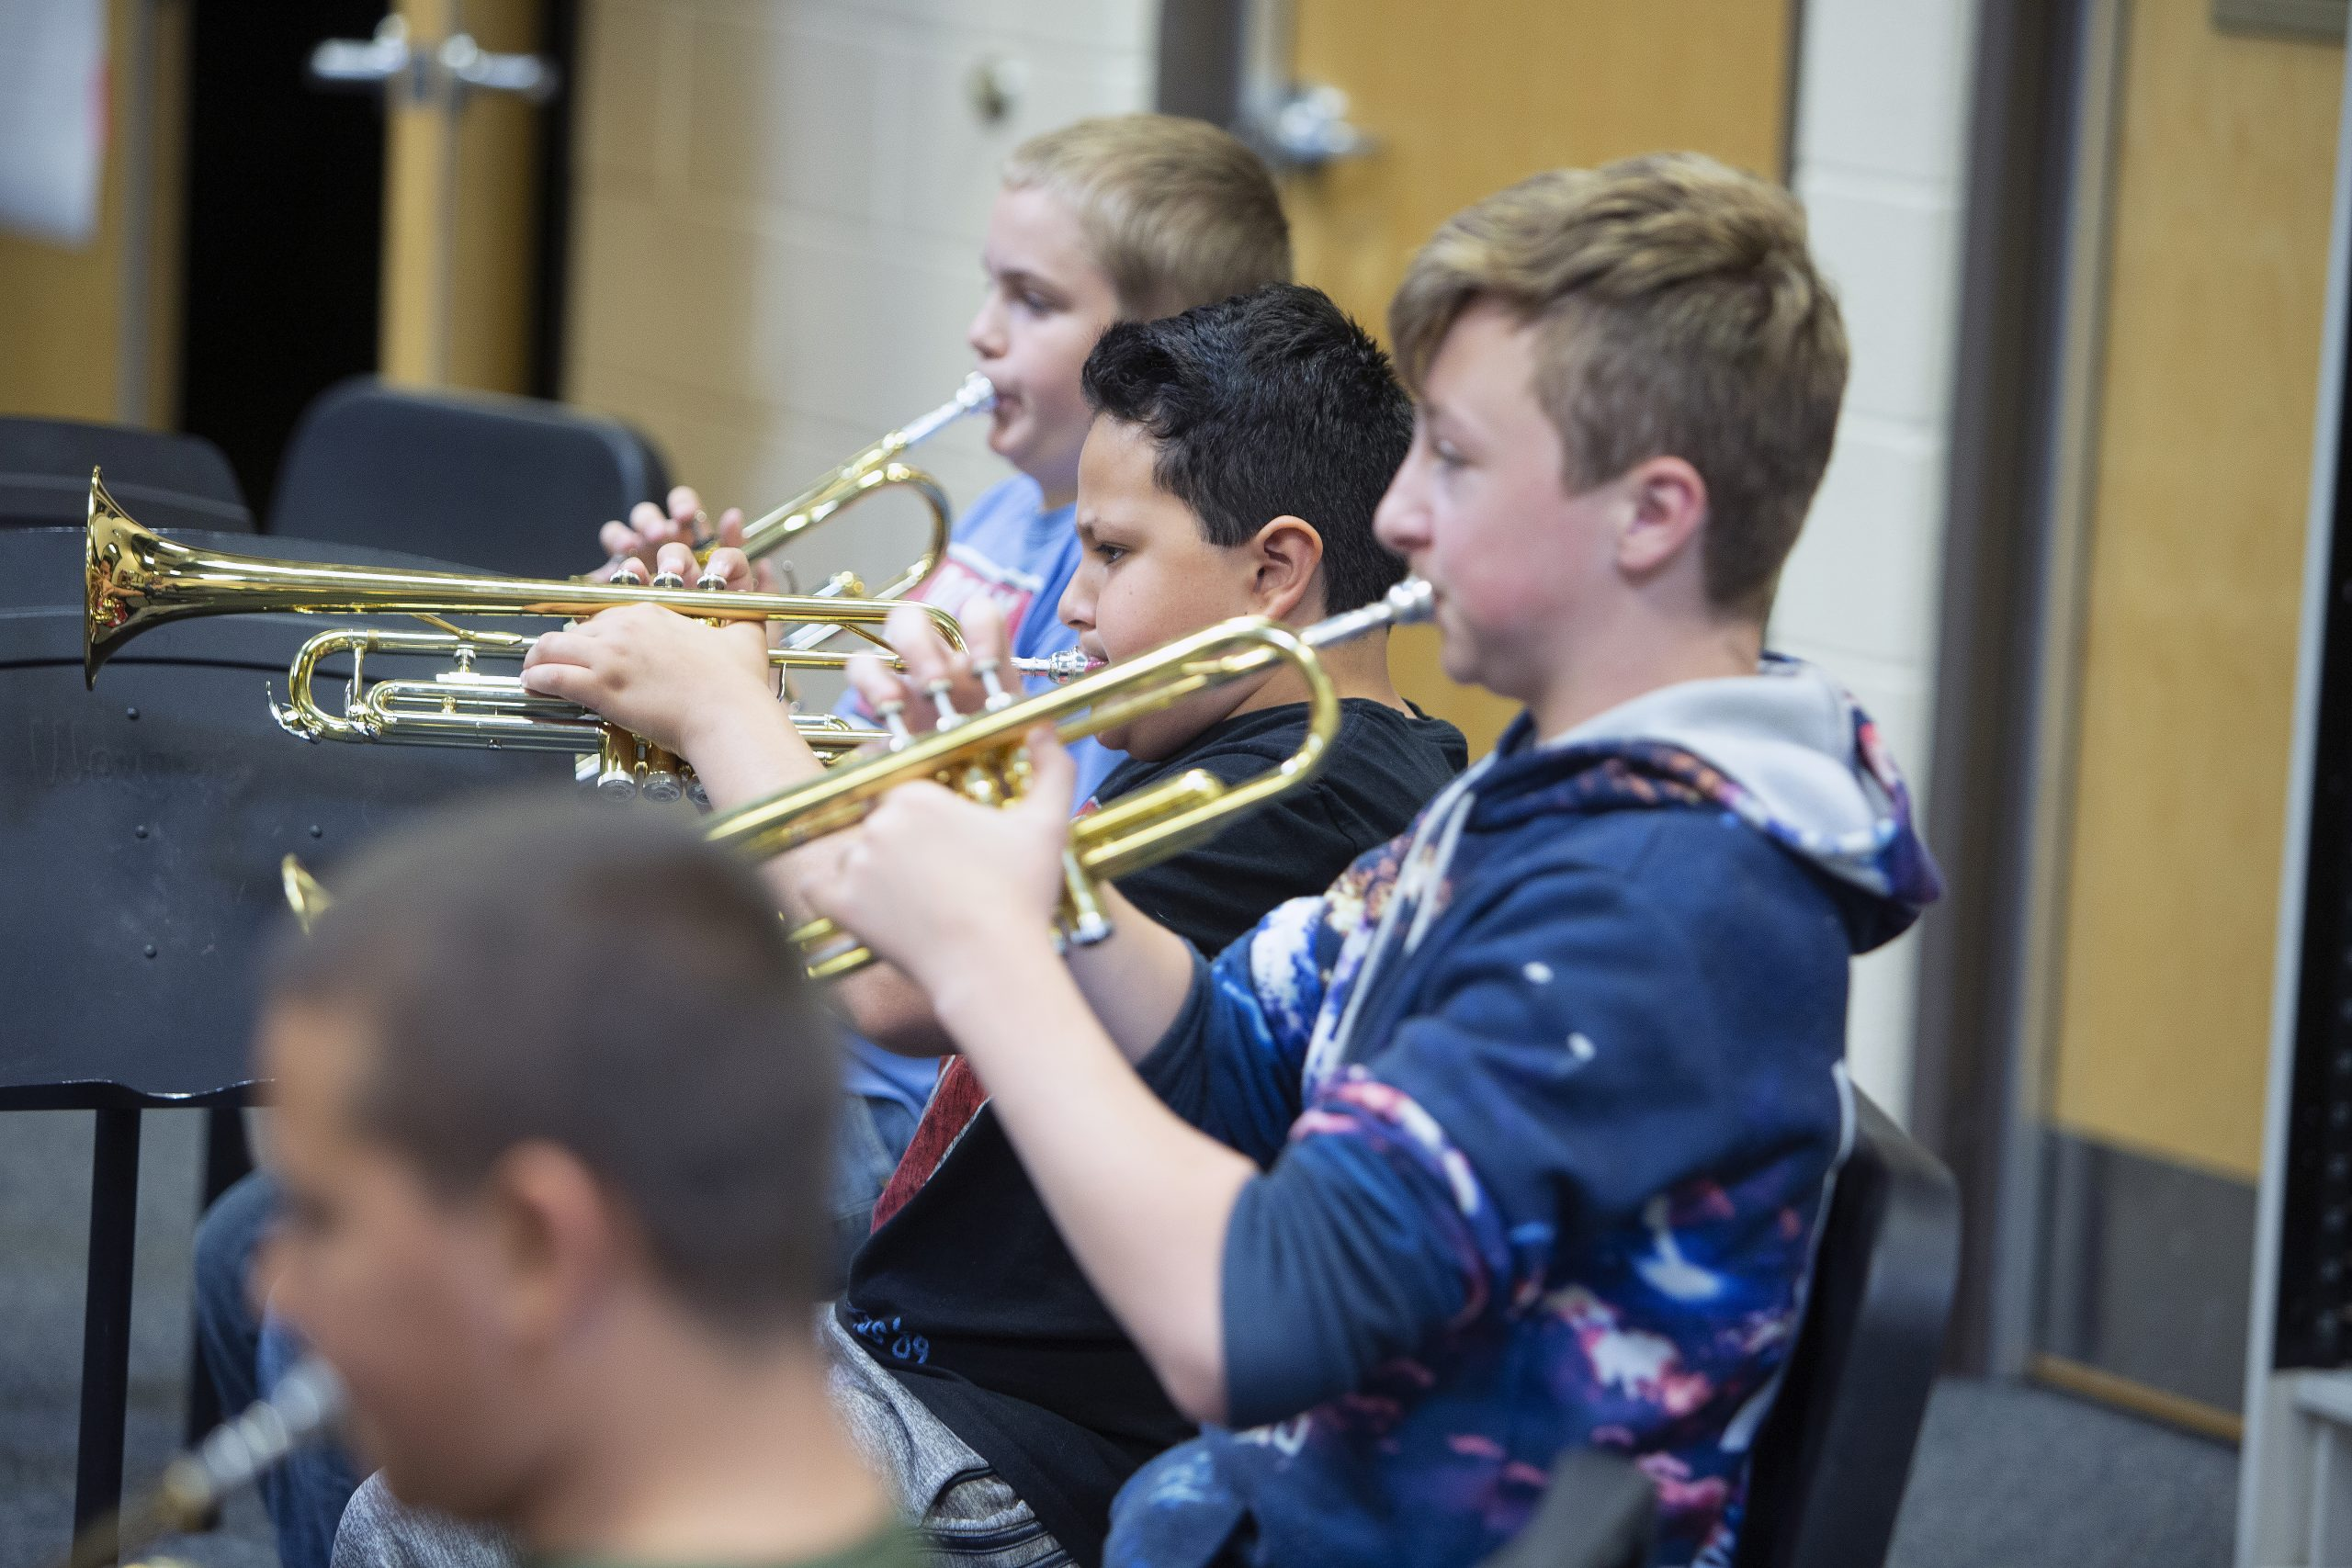 Three male students playing trumpet